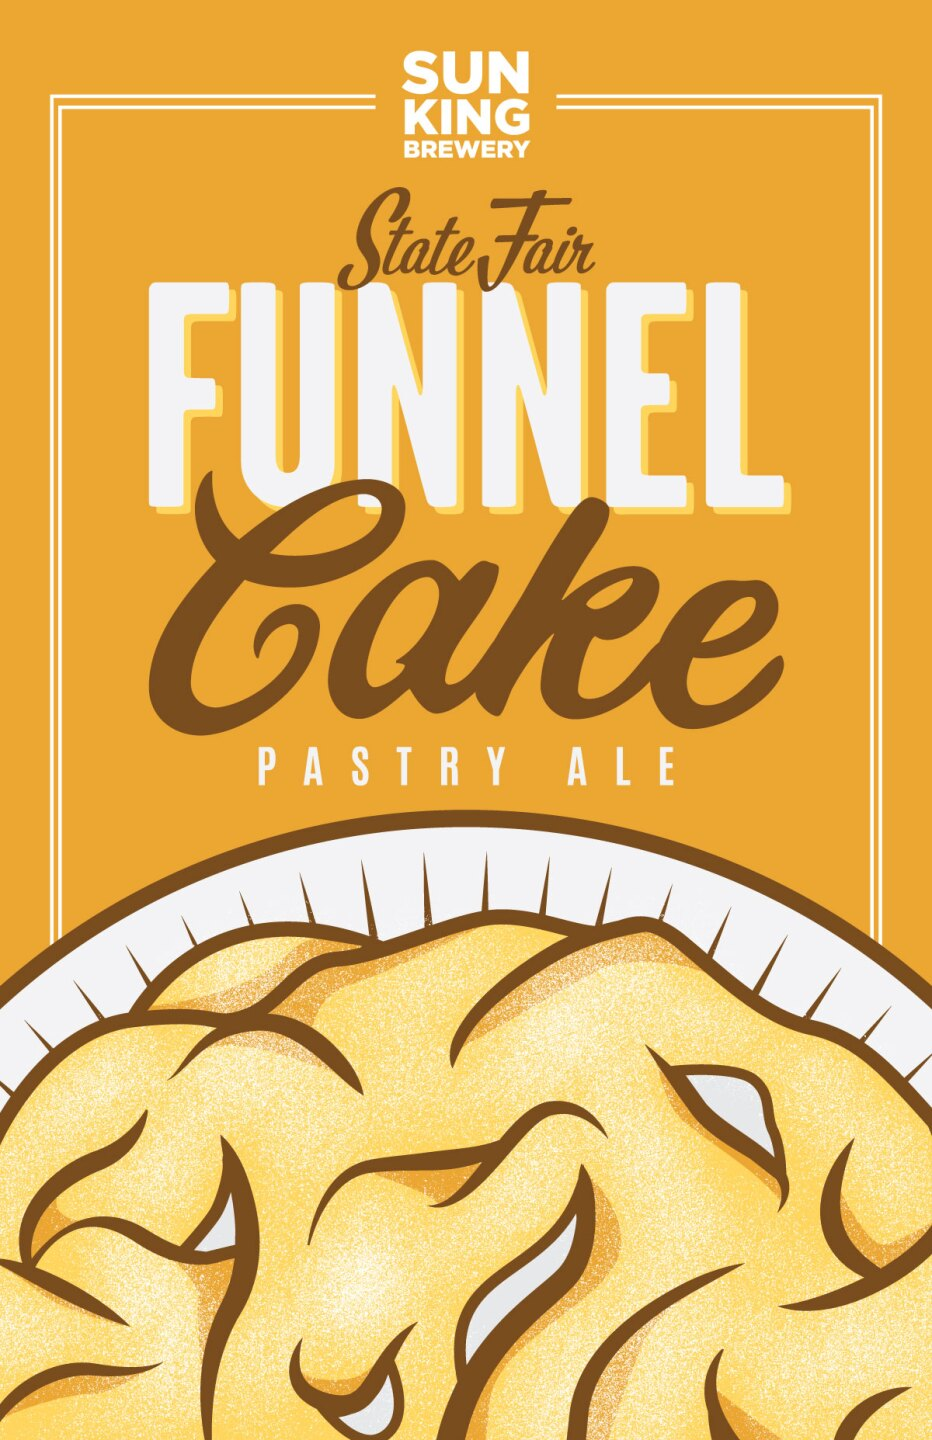 funnel-cake-pastry-ale_sun-king-brewery_51297222382_o.jpg